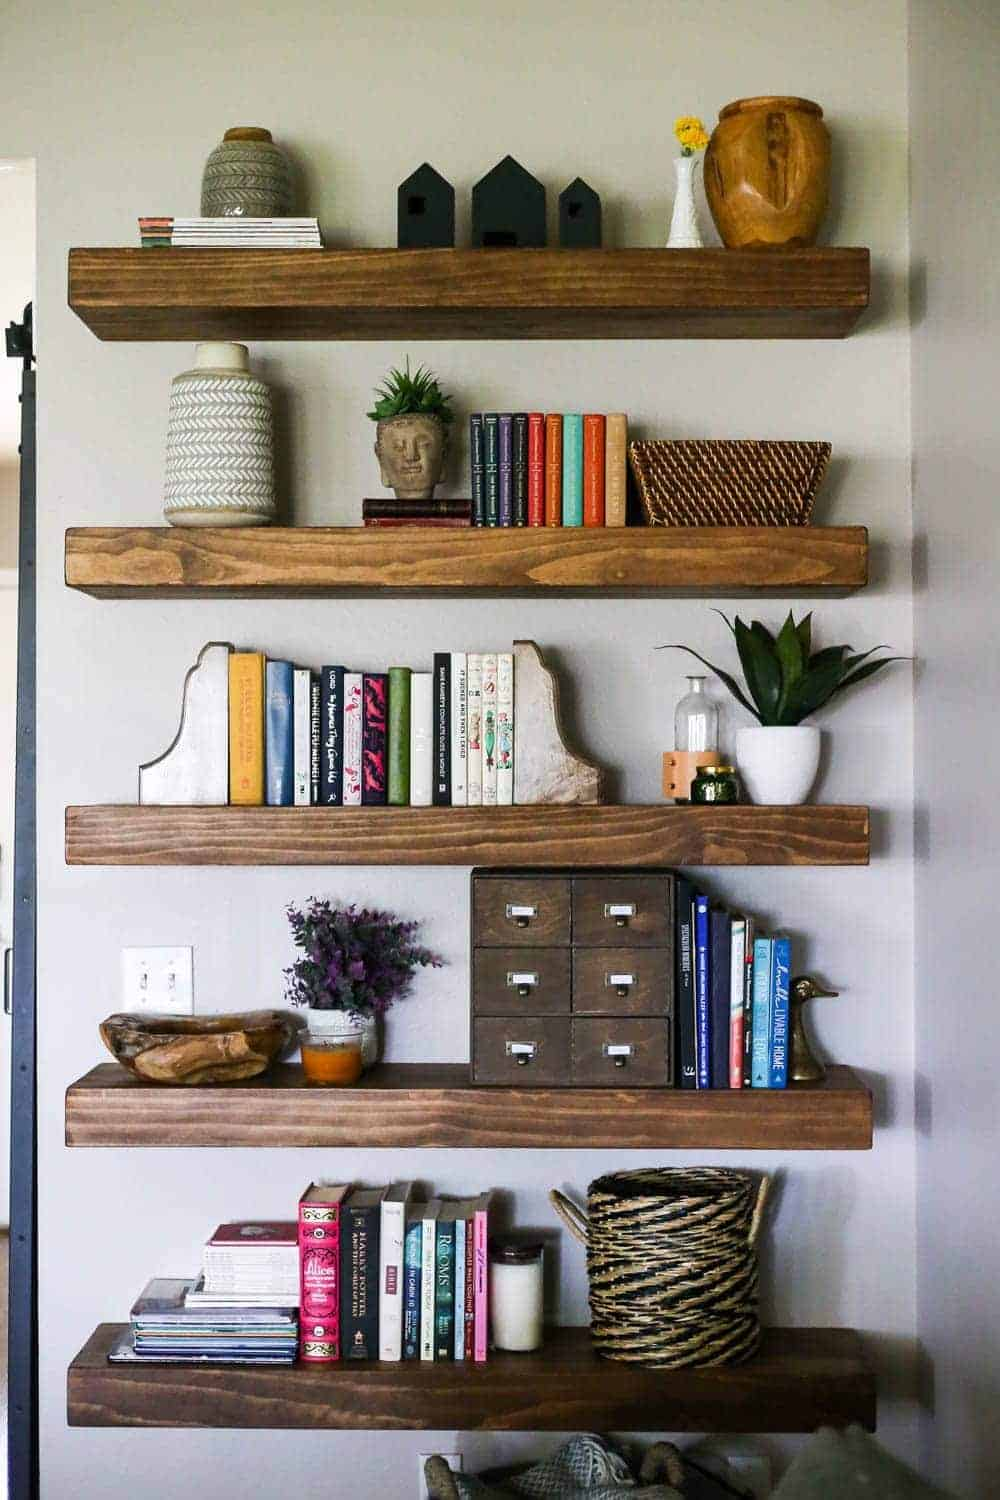 Chunky wood floating shelves in living room decorated with plants, vases, colorful books and baskets